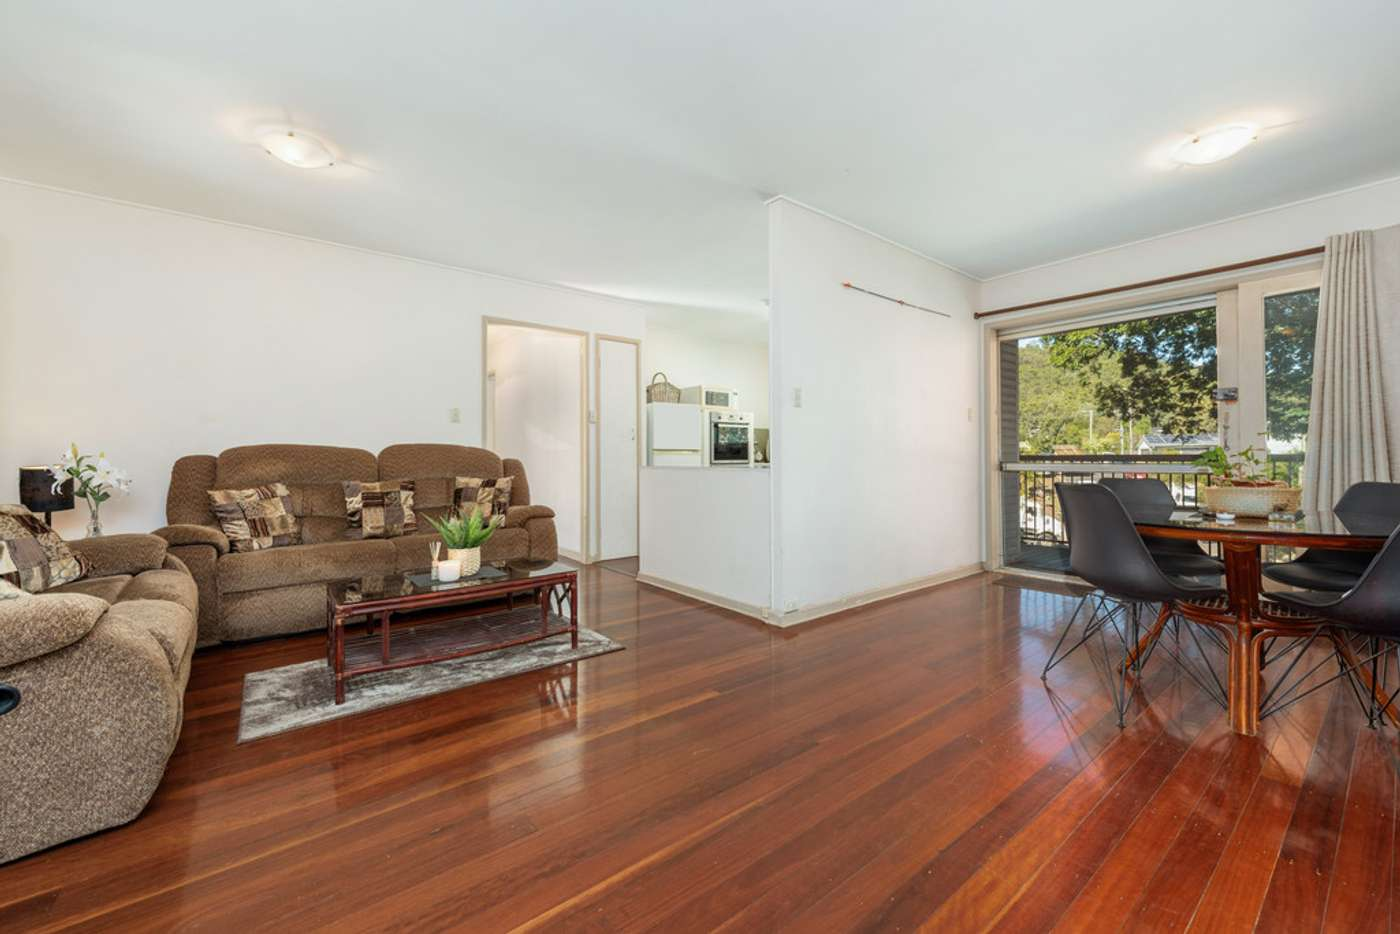 Sixth view of Homely house listing, 2 Suncroft Street, Mount Gravatt QLD 4122